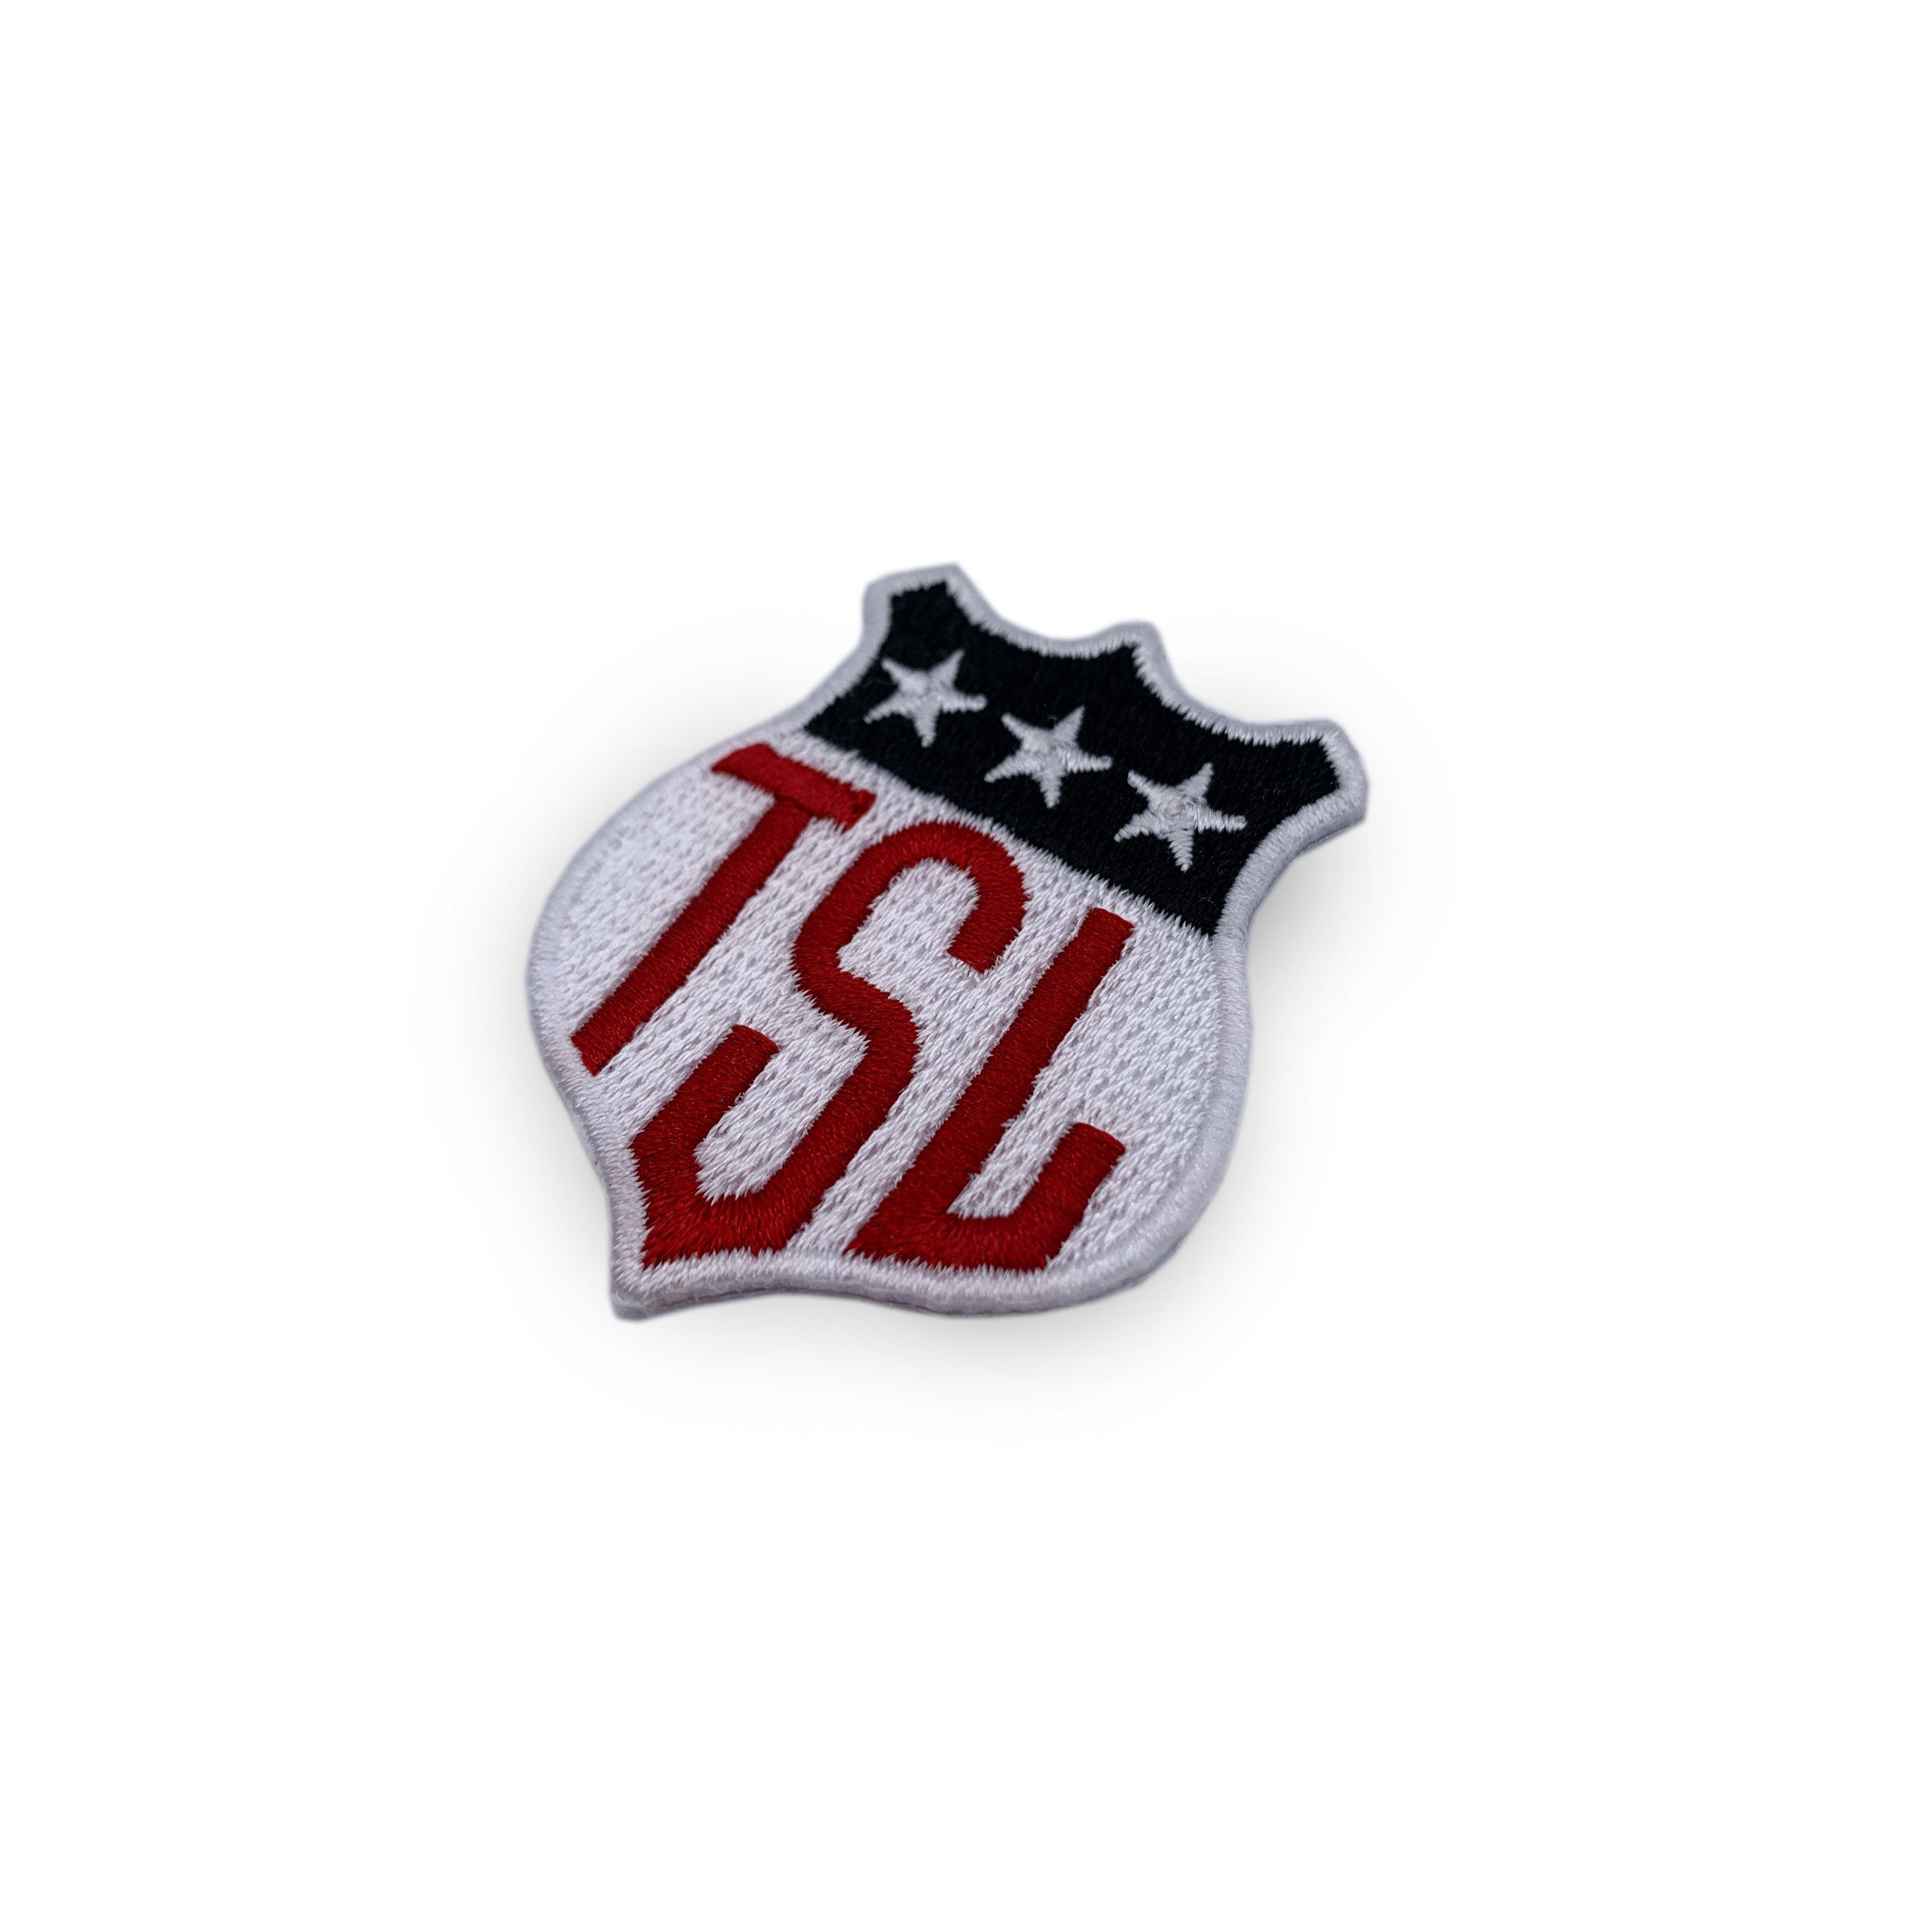 TSL HOCKEY LOGO